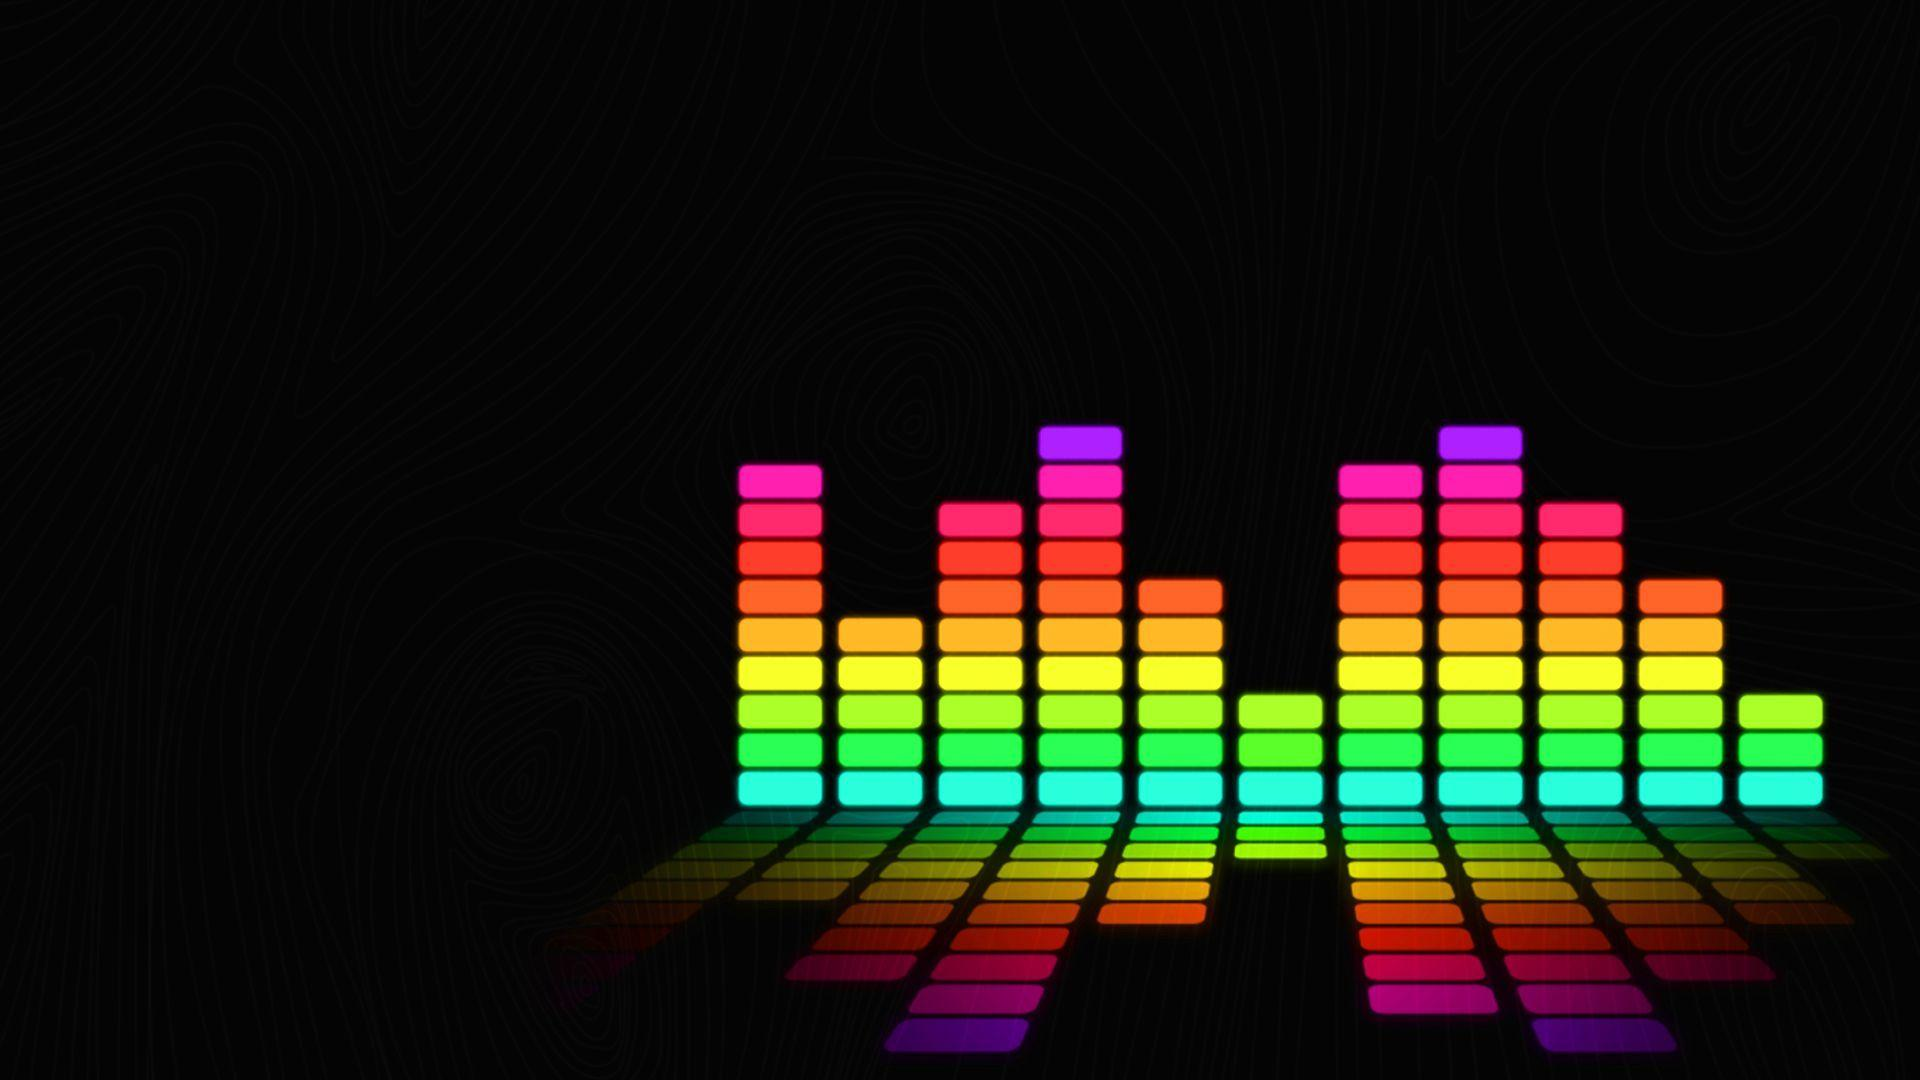 Electro house music wallpapers wallpaper cave for Pop house music